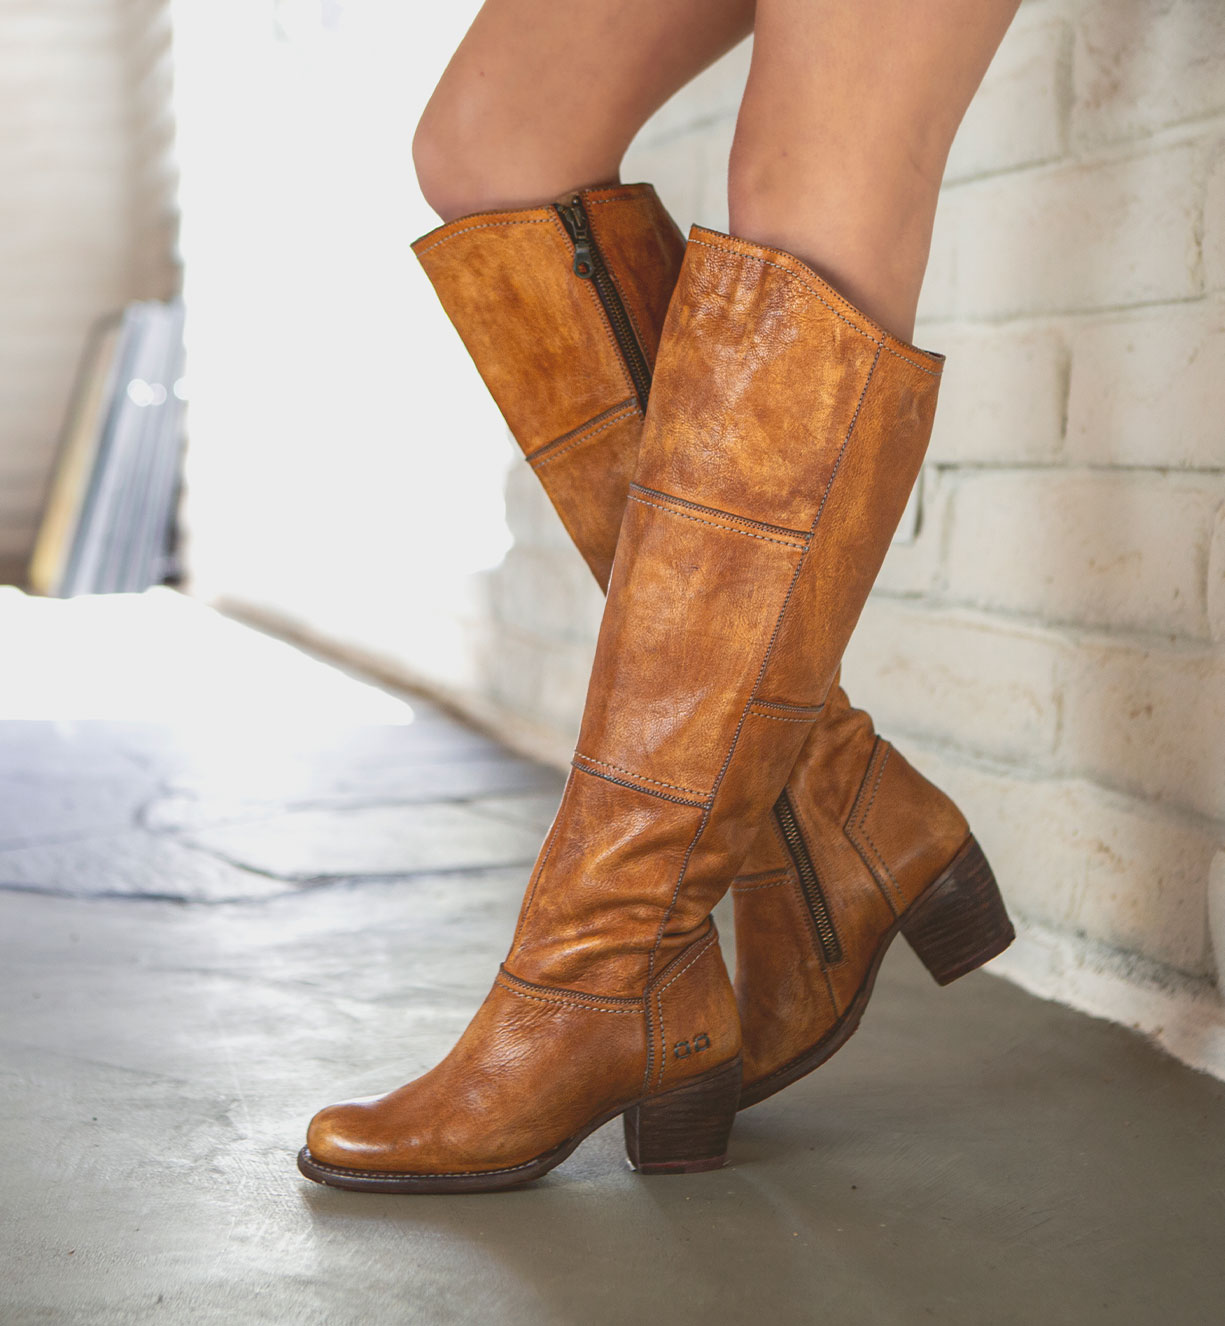 bedstu women's leather boots